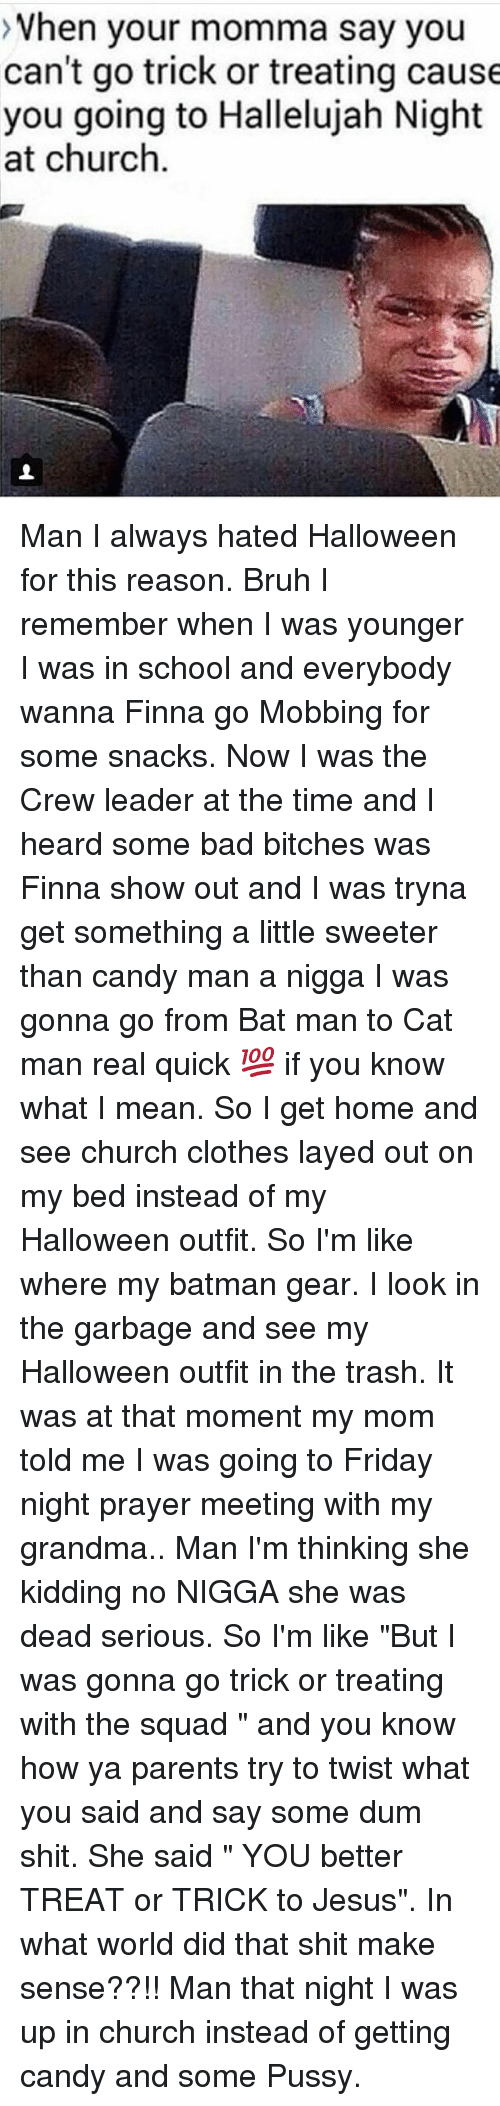 """bat man: >Vhen your momma say you  can't go trick or treating cause  you going to Hallelujah Night  at churclh Man I always hated Halloween for this reason. Bruh I remember when I was younger I was in school and everybody wanna Finna go Mobbing for some snacks. Now I was the Crew leader at the time and I heard some bad bitches was Finna show out and I was tryna get something a little sweeter than candy man a nigga I was gonna go from Bat man to Cat man real quick 💯 if you know what I mean. So I get home and see church clothes layed out on my bed instead of my Halloween outfit. So I'm like where my batman gear. I look in the garbage and see my Halloween outfit in the trash. It was at that moment my mom told me I was going to Friday night prayer meeting with my grandma.. Man I'm thinking she kidding no NIGGA she was dead serious. So I'm like """"But I was gonna go trick or treating with the squad """" and you know how ya parents try to twist what you said and say some dum shit. She said """" YOU better TREAT or TRICK to Jesus"""". In what world did that shit make sense??!! Man that night I was up in church instead of getting candy and some Pussy."""